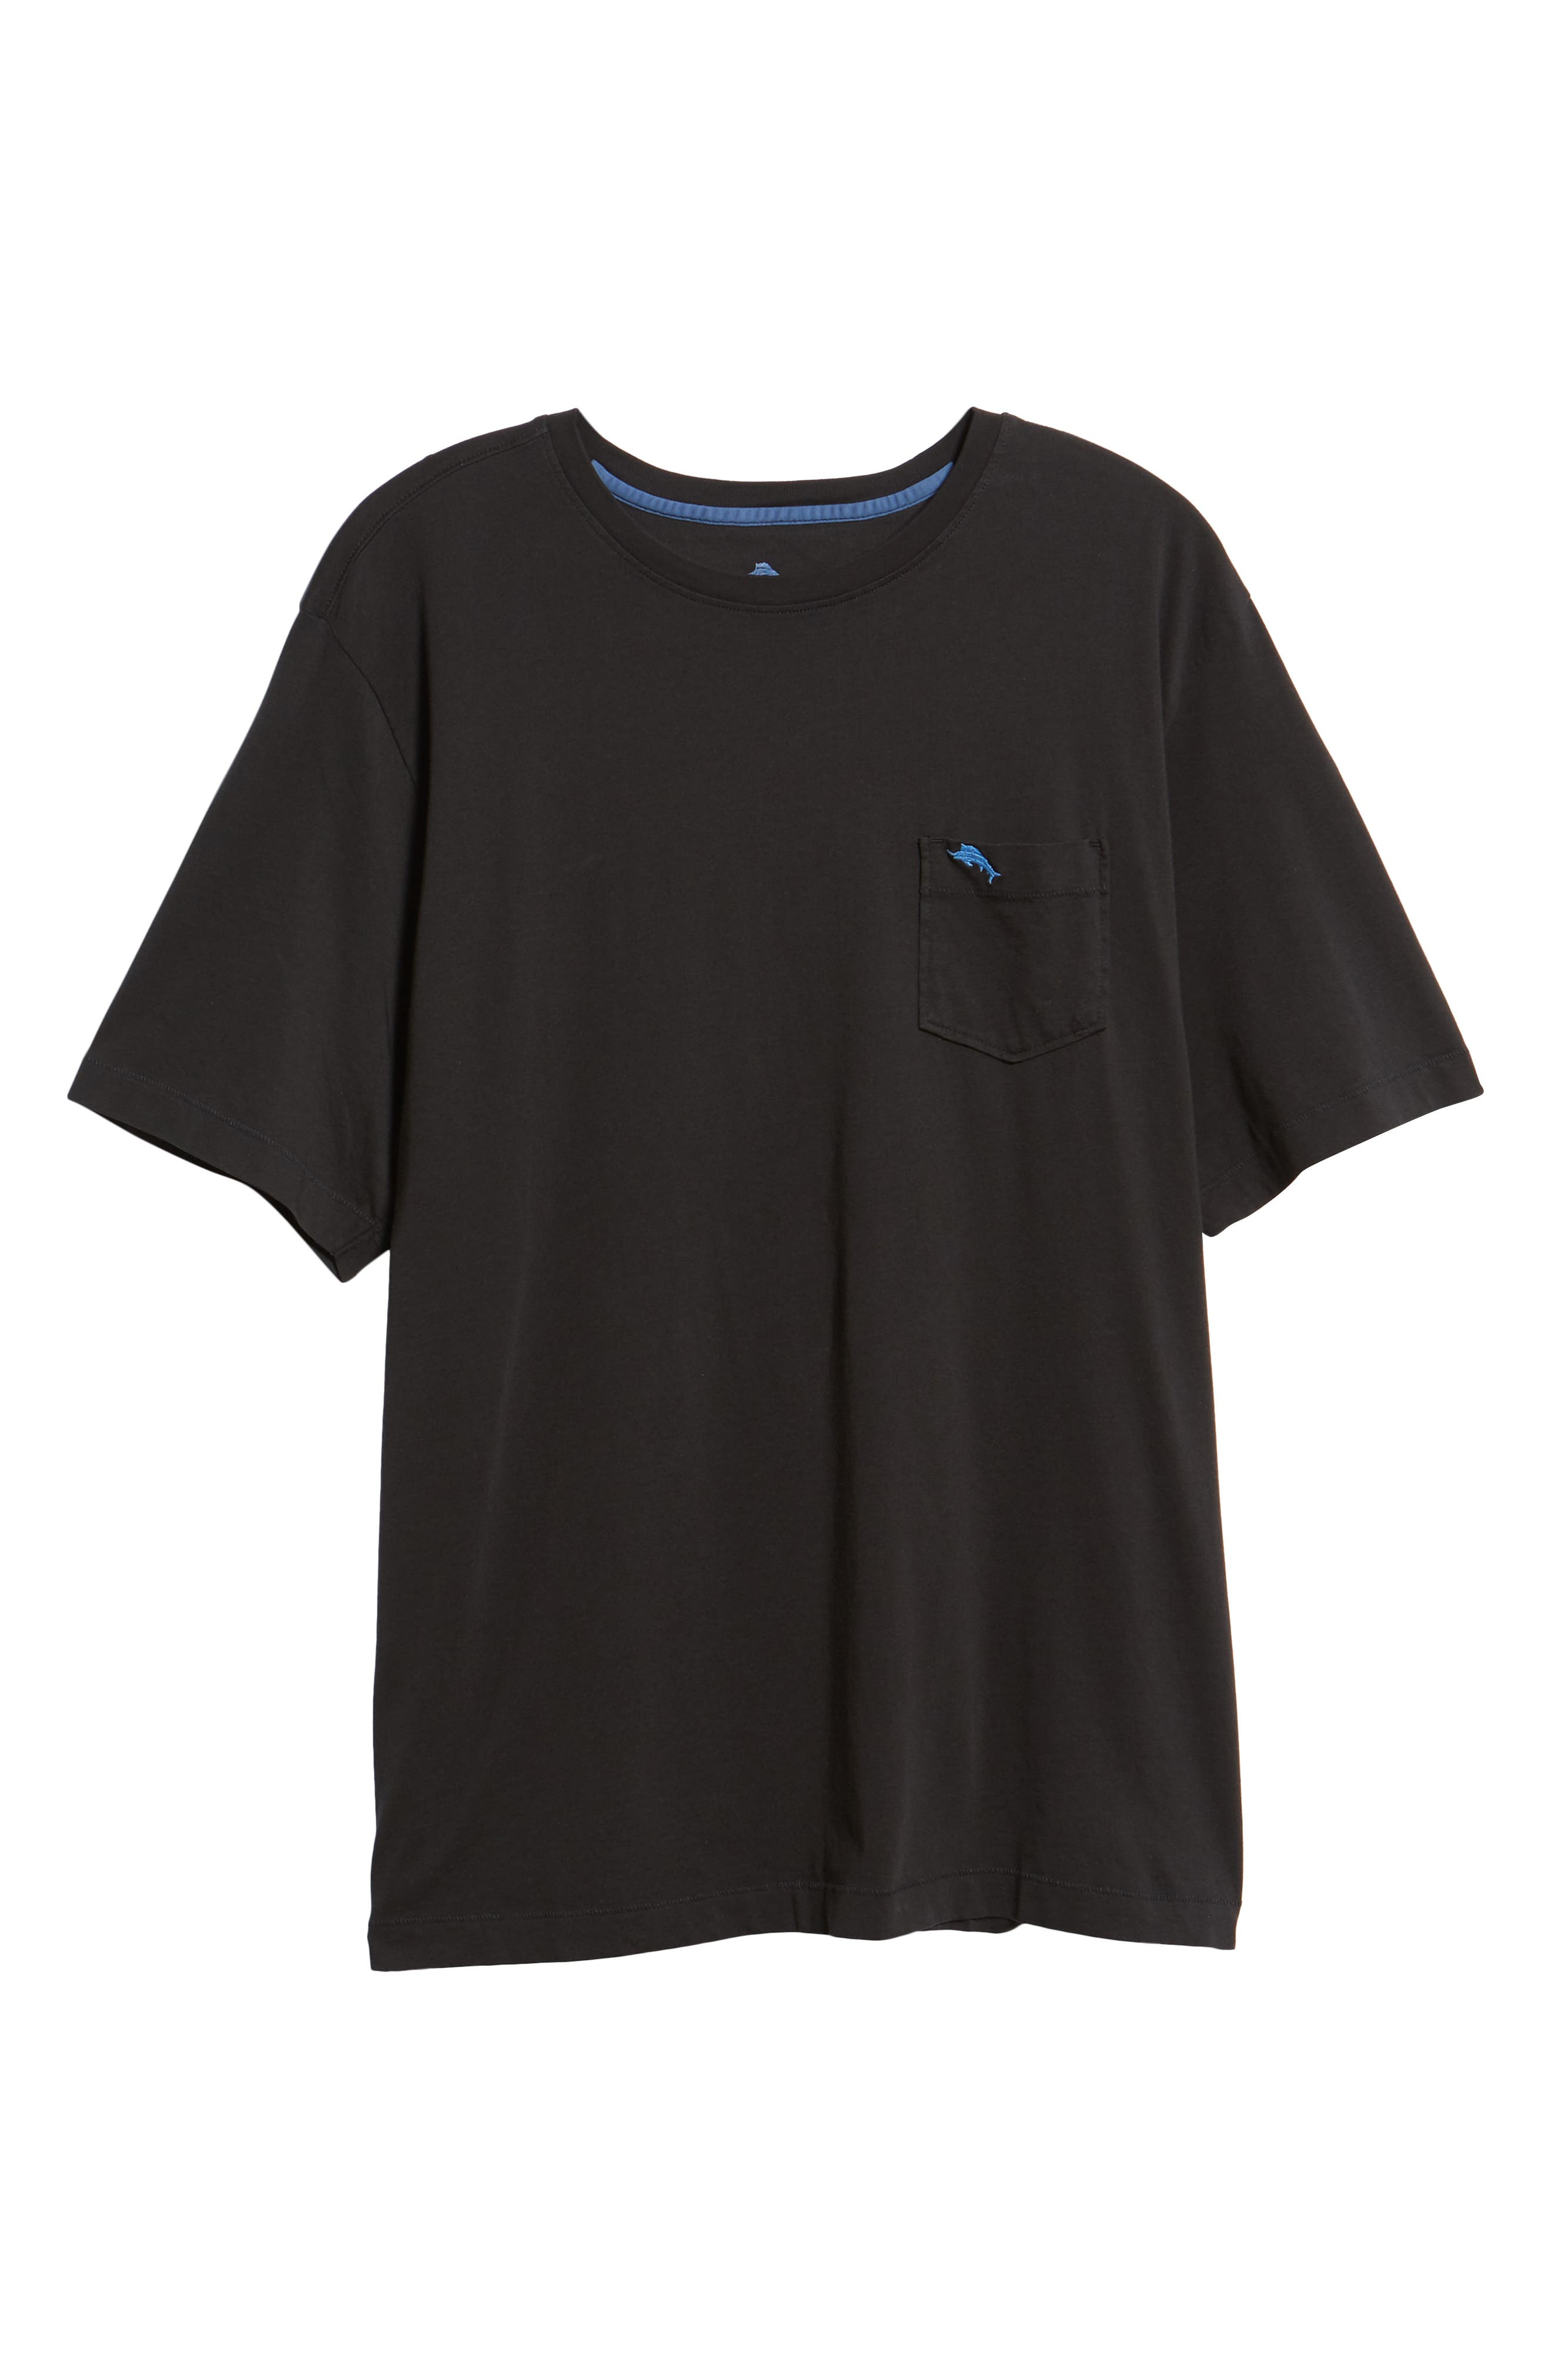 'New Bali Sky' Original Fit Crewneck Pocket T-Shirt,                             Alternate thumbnail 6, color,                             BLACK